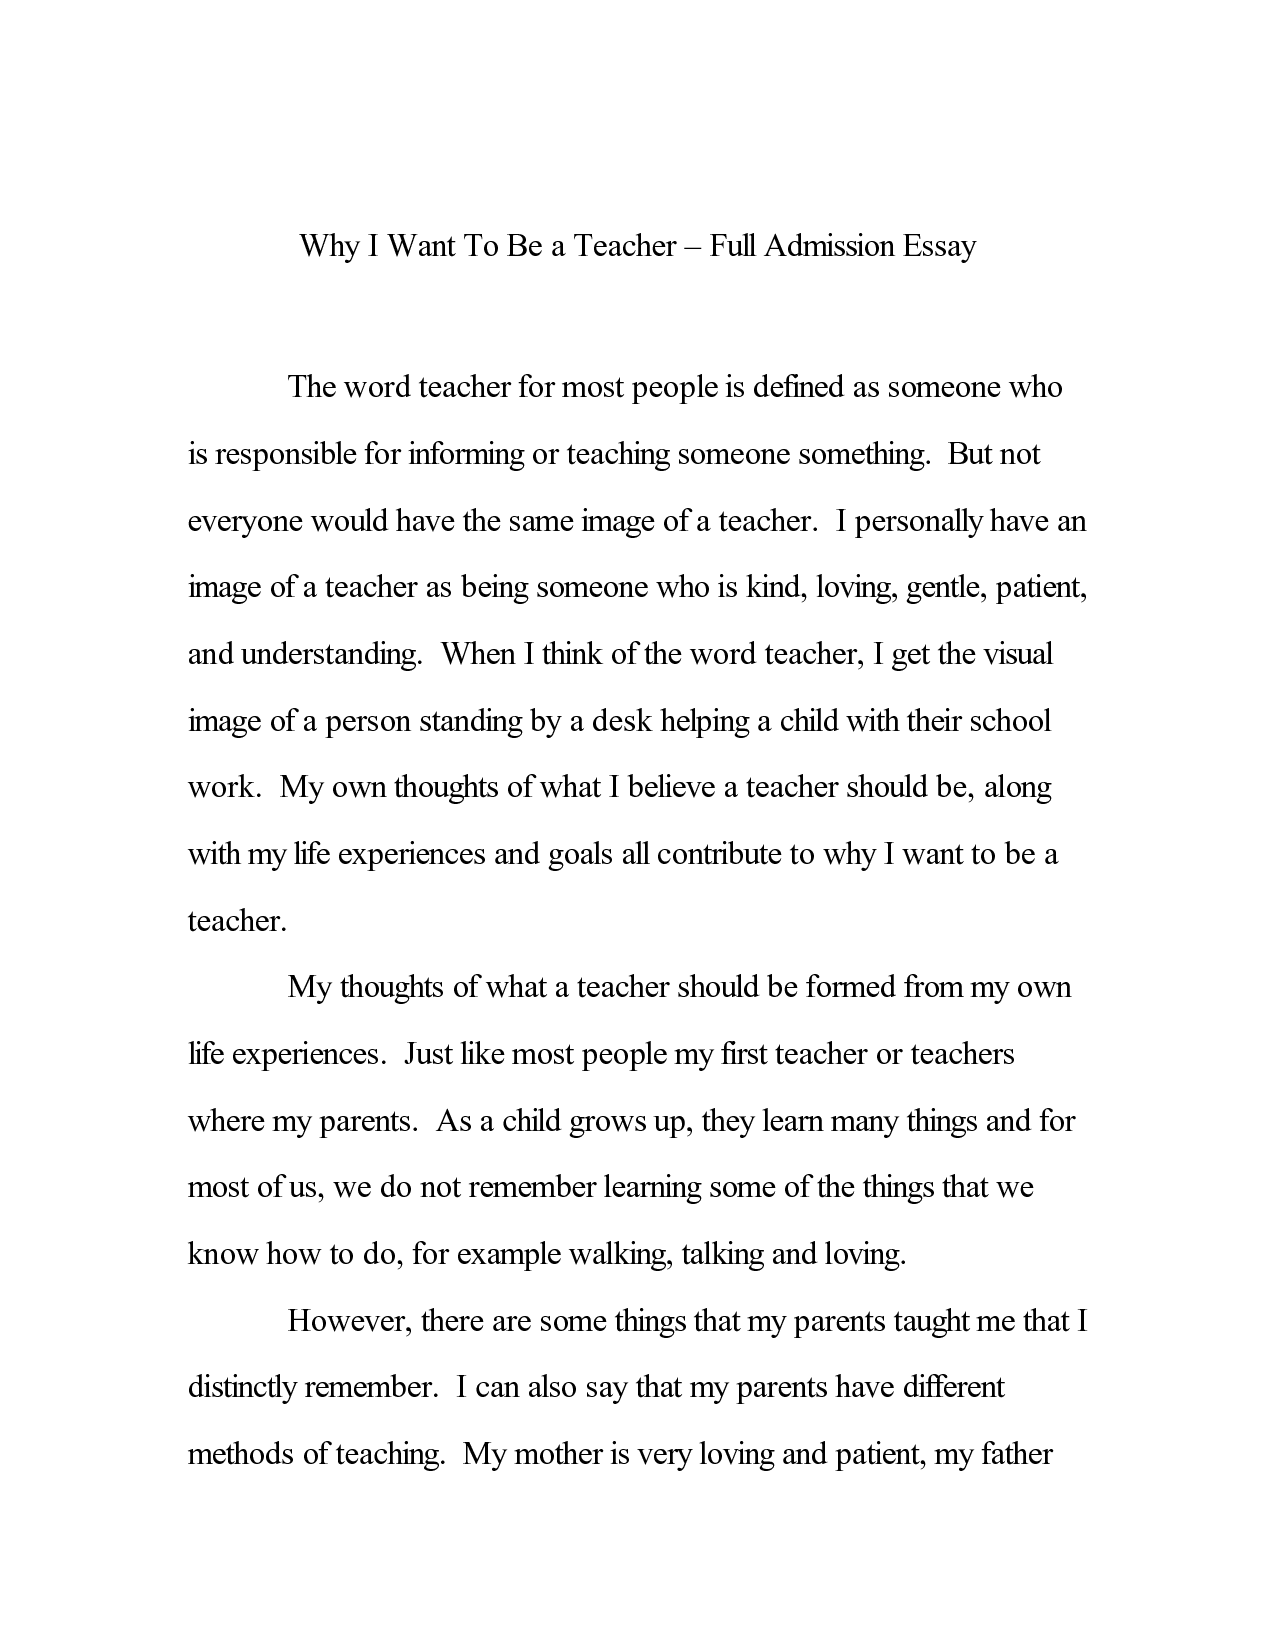 004 Writing College Application Essay Rare A How To Write Term Paper Outline Topics On Examples Full